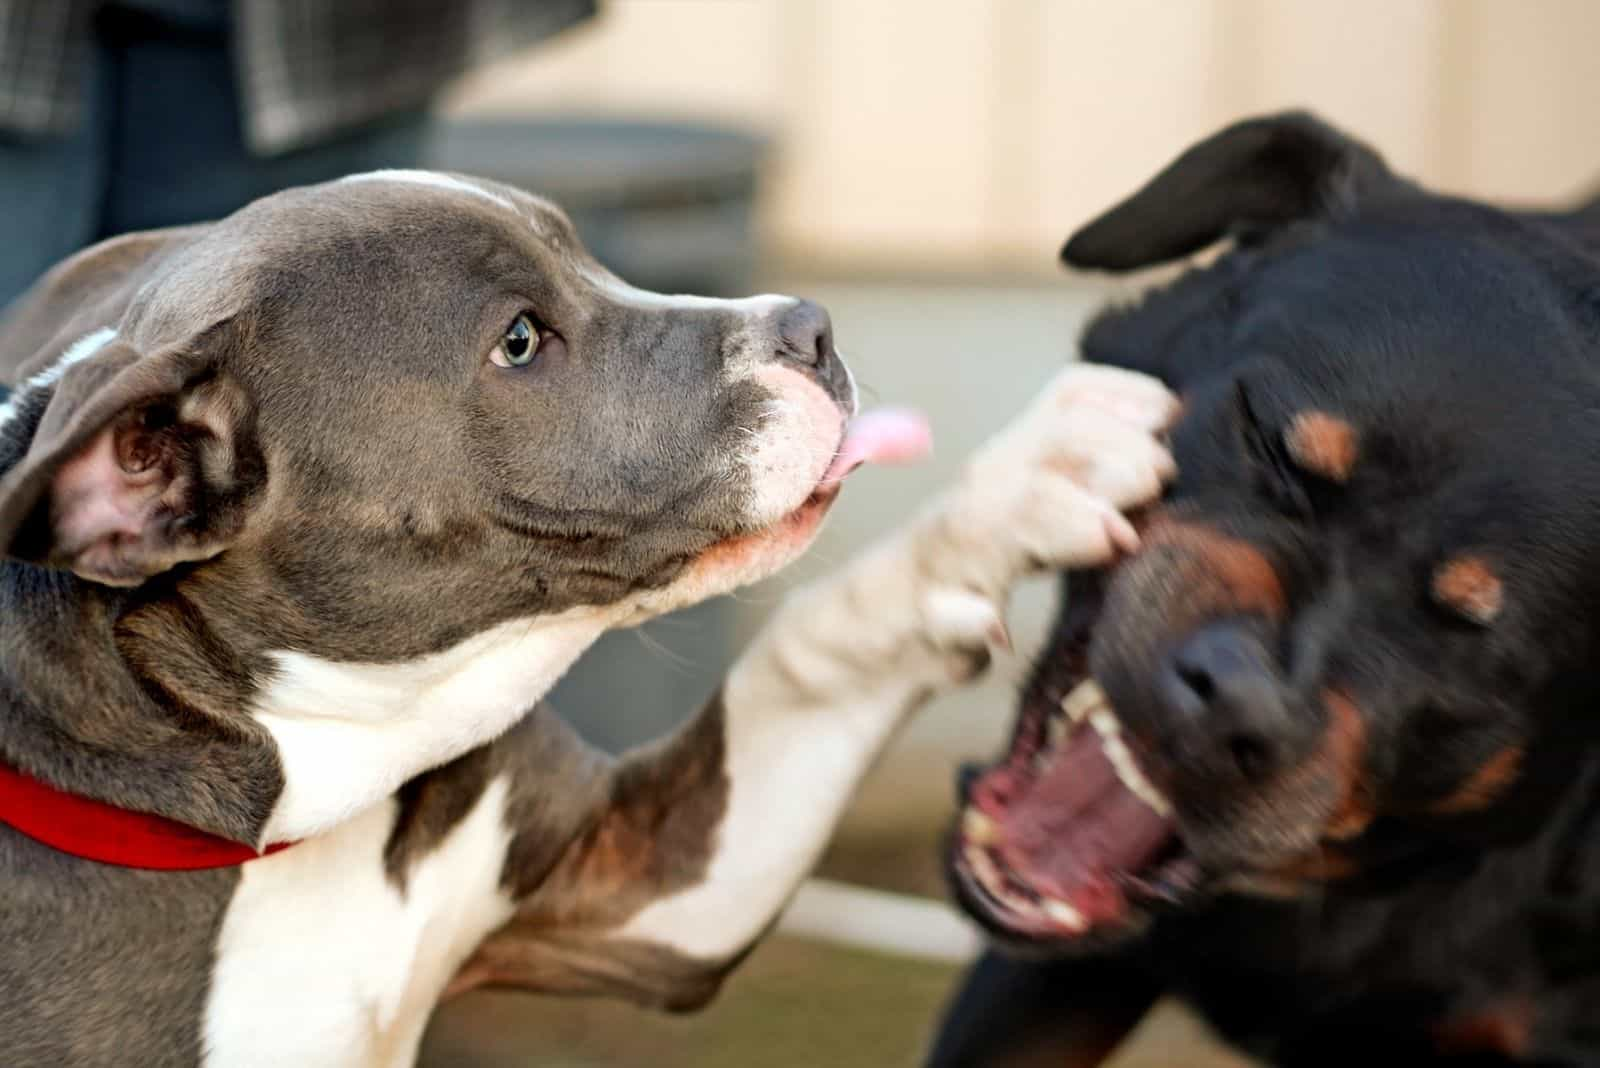 pitbull and rottweiler dogs playing and fighting